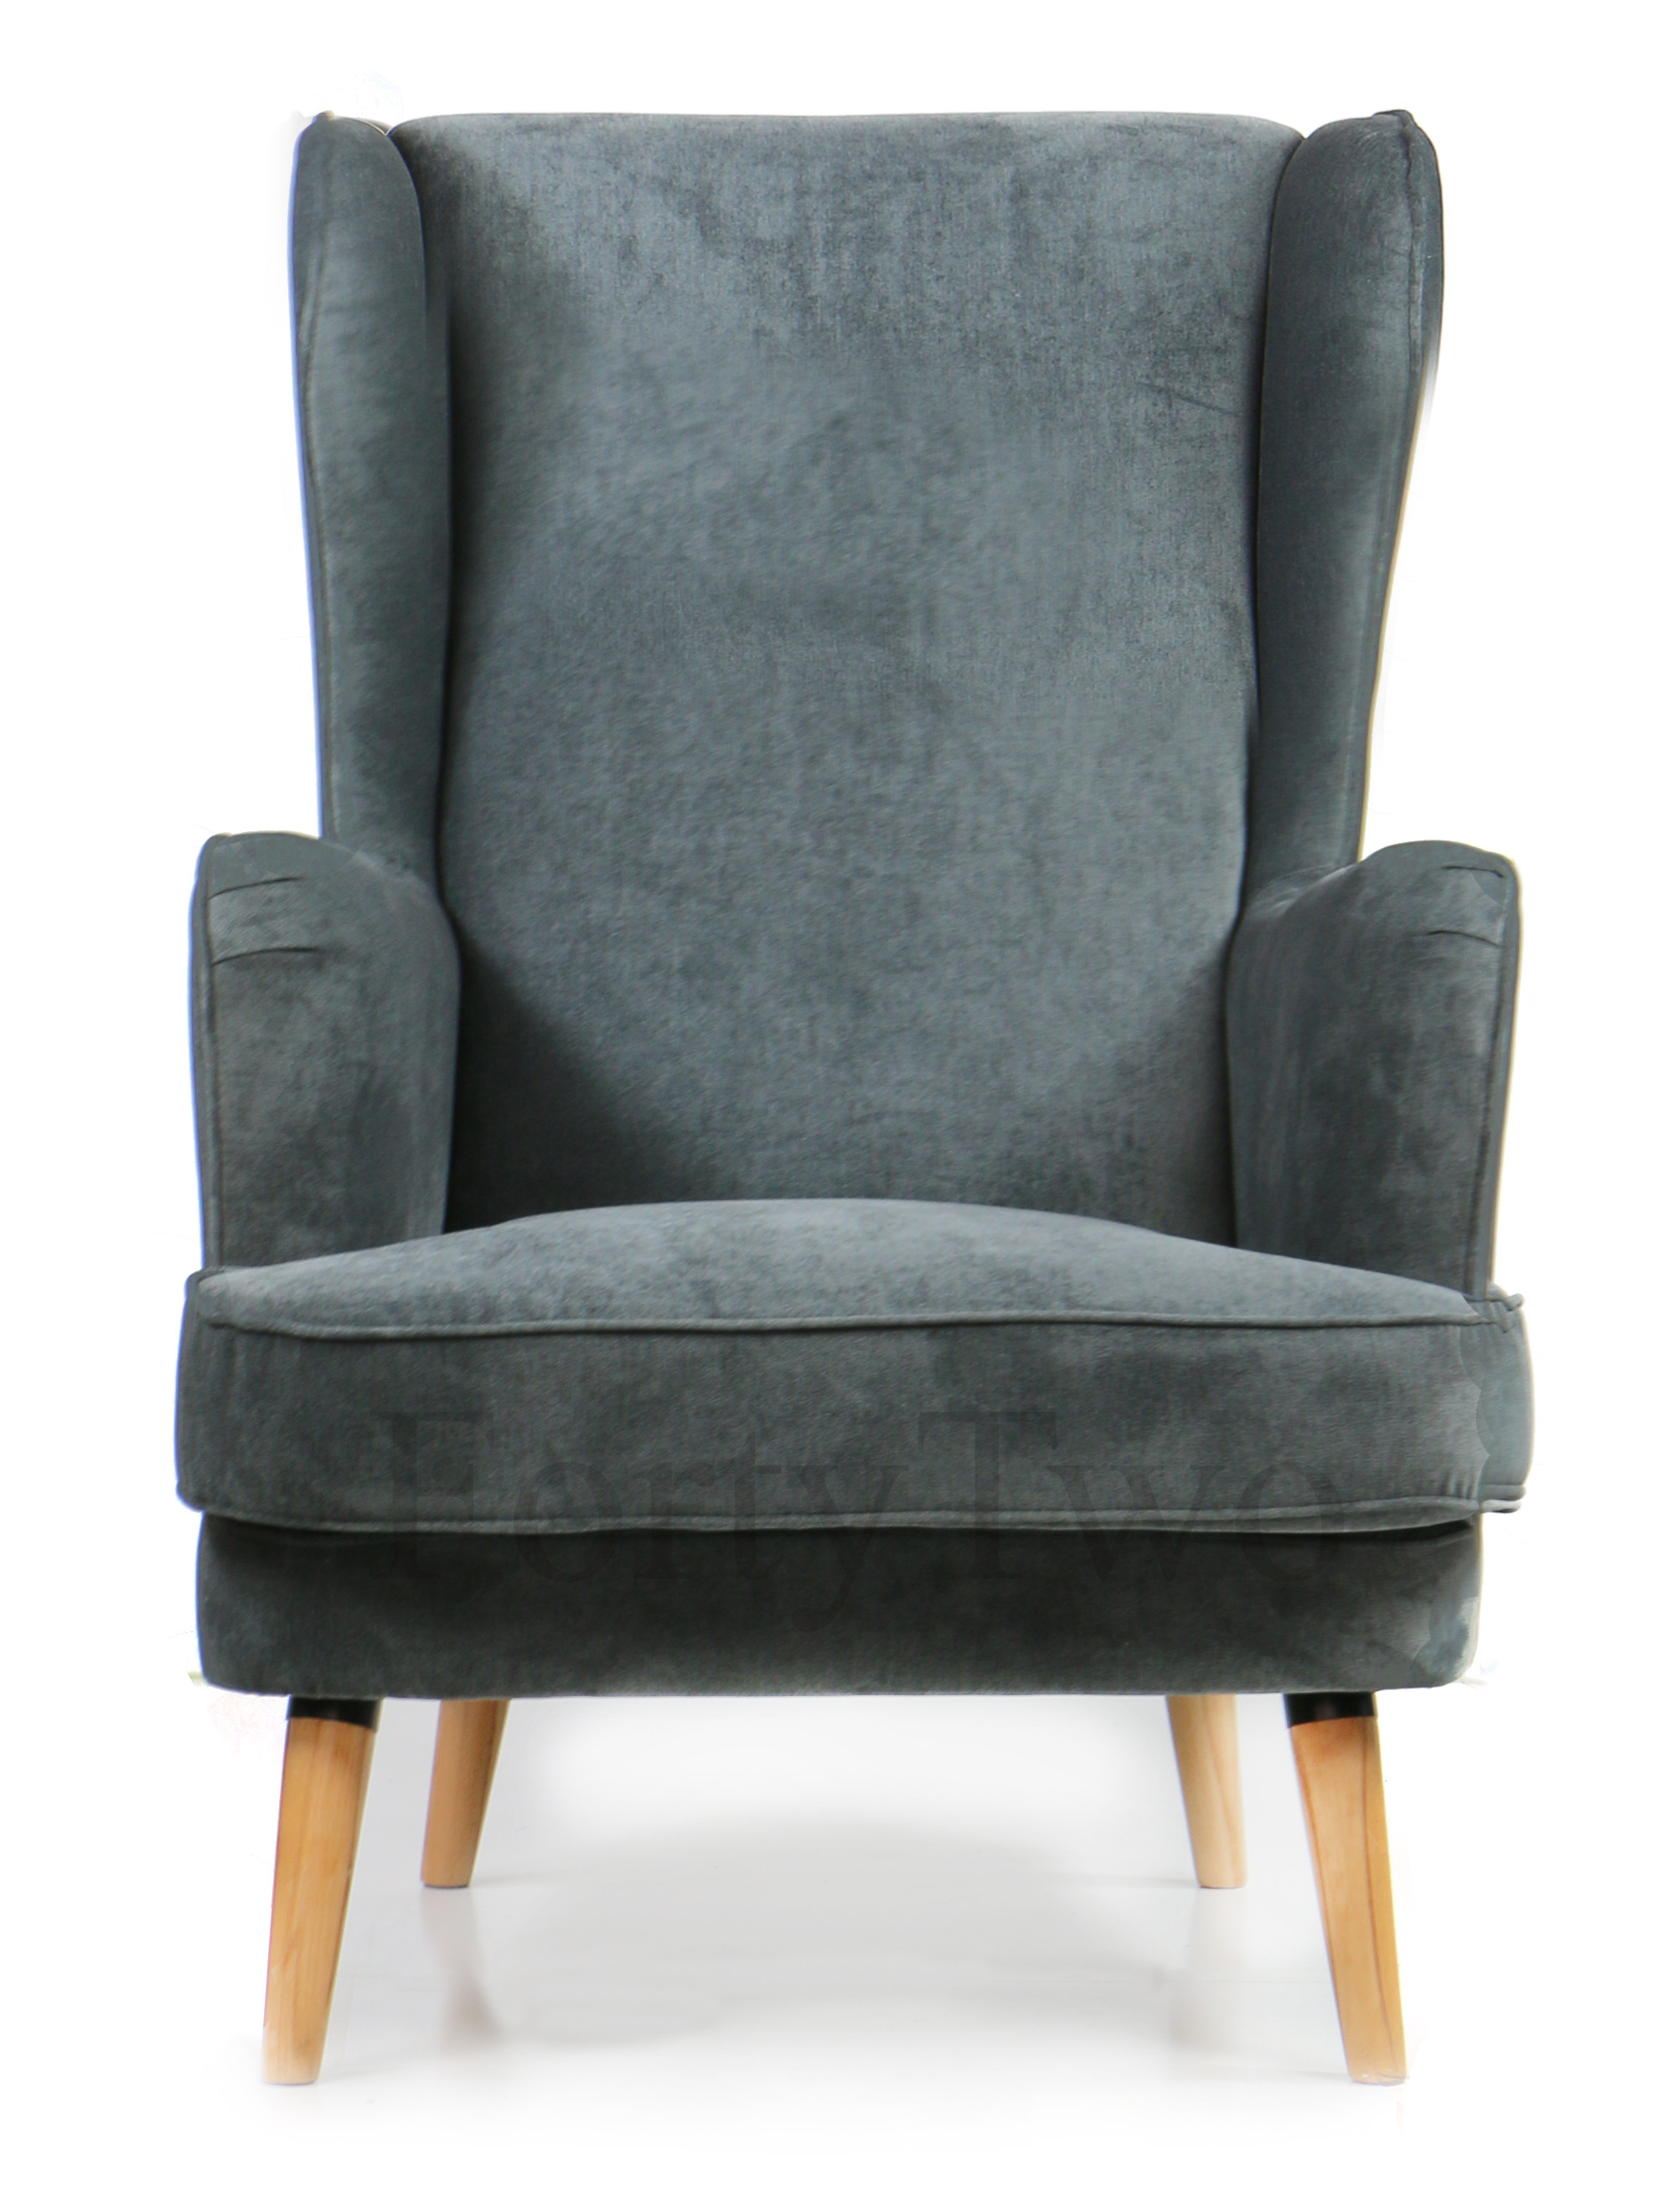 Cavali Arm Chair Smoke Armchairs Accent Chairs Seating